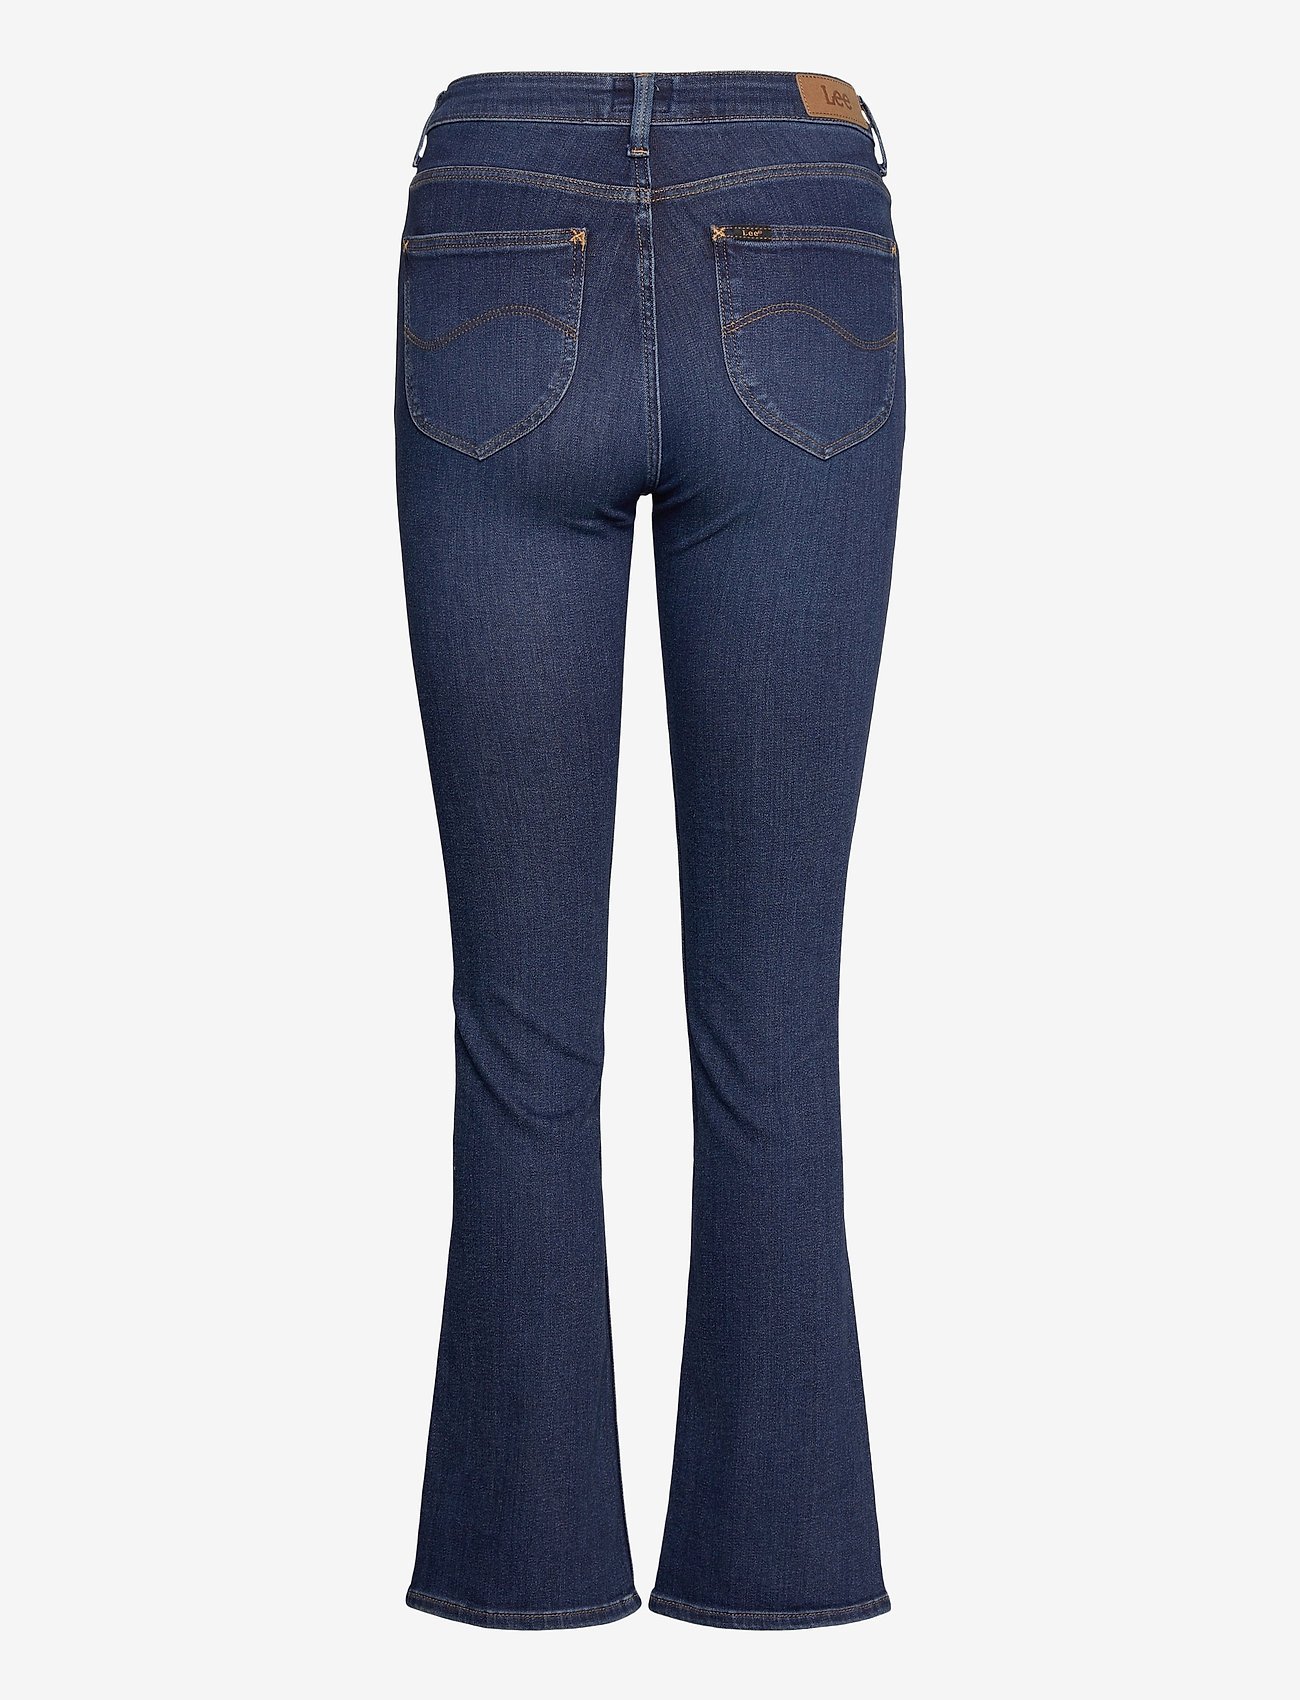 Lee Jeans - BREESE BOOT - uitlopende jeans - dark bristol - 1